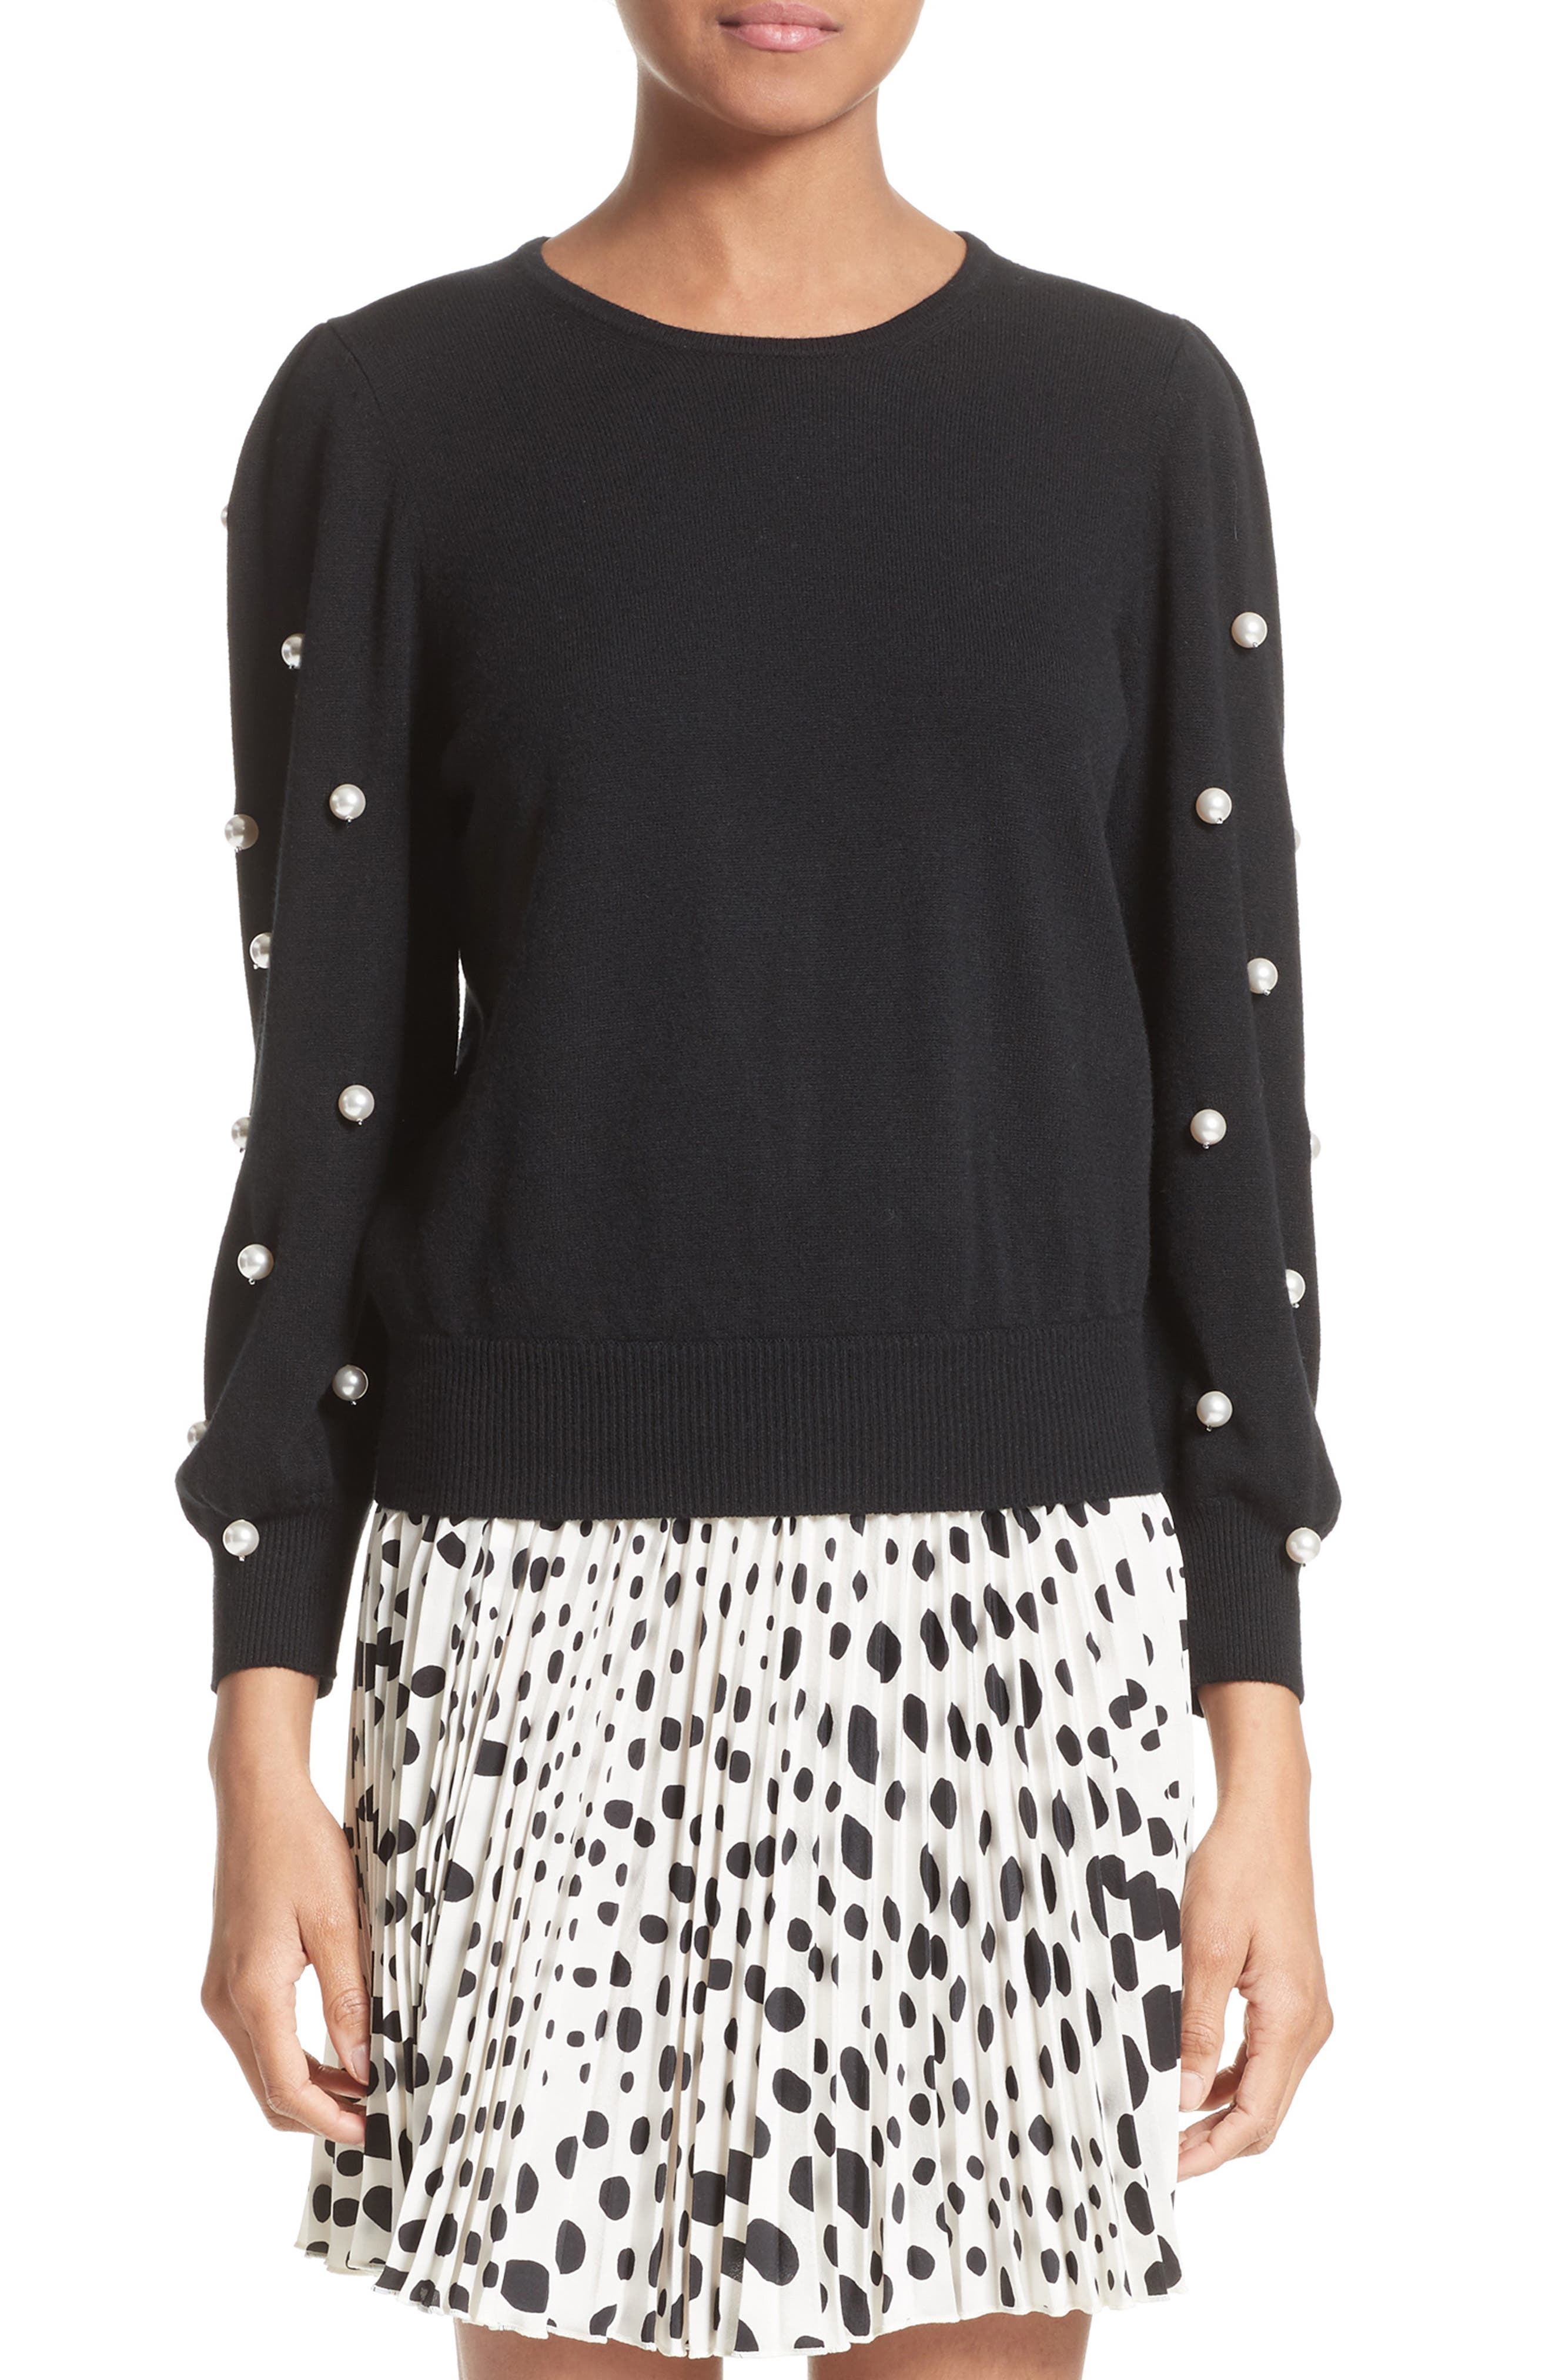 MARC JACOBS Imitation Pearl Embellished Wool & Cashmere Sweater